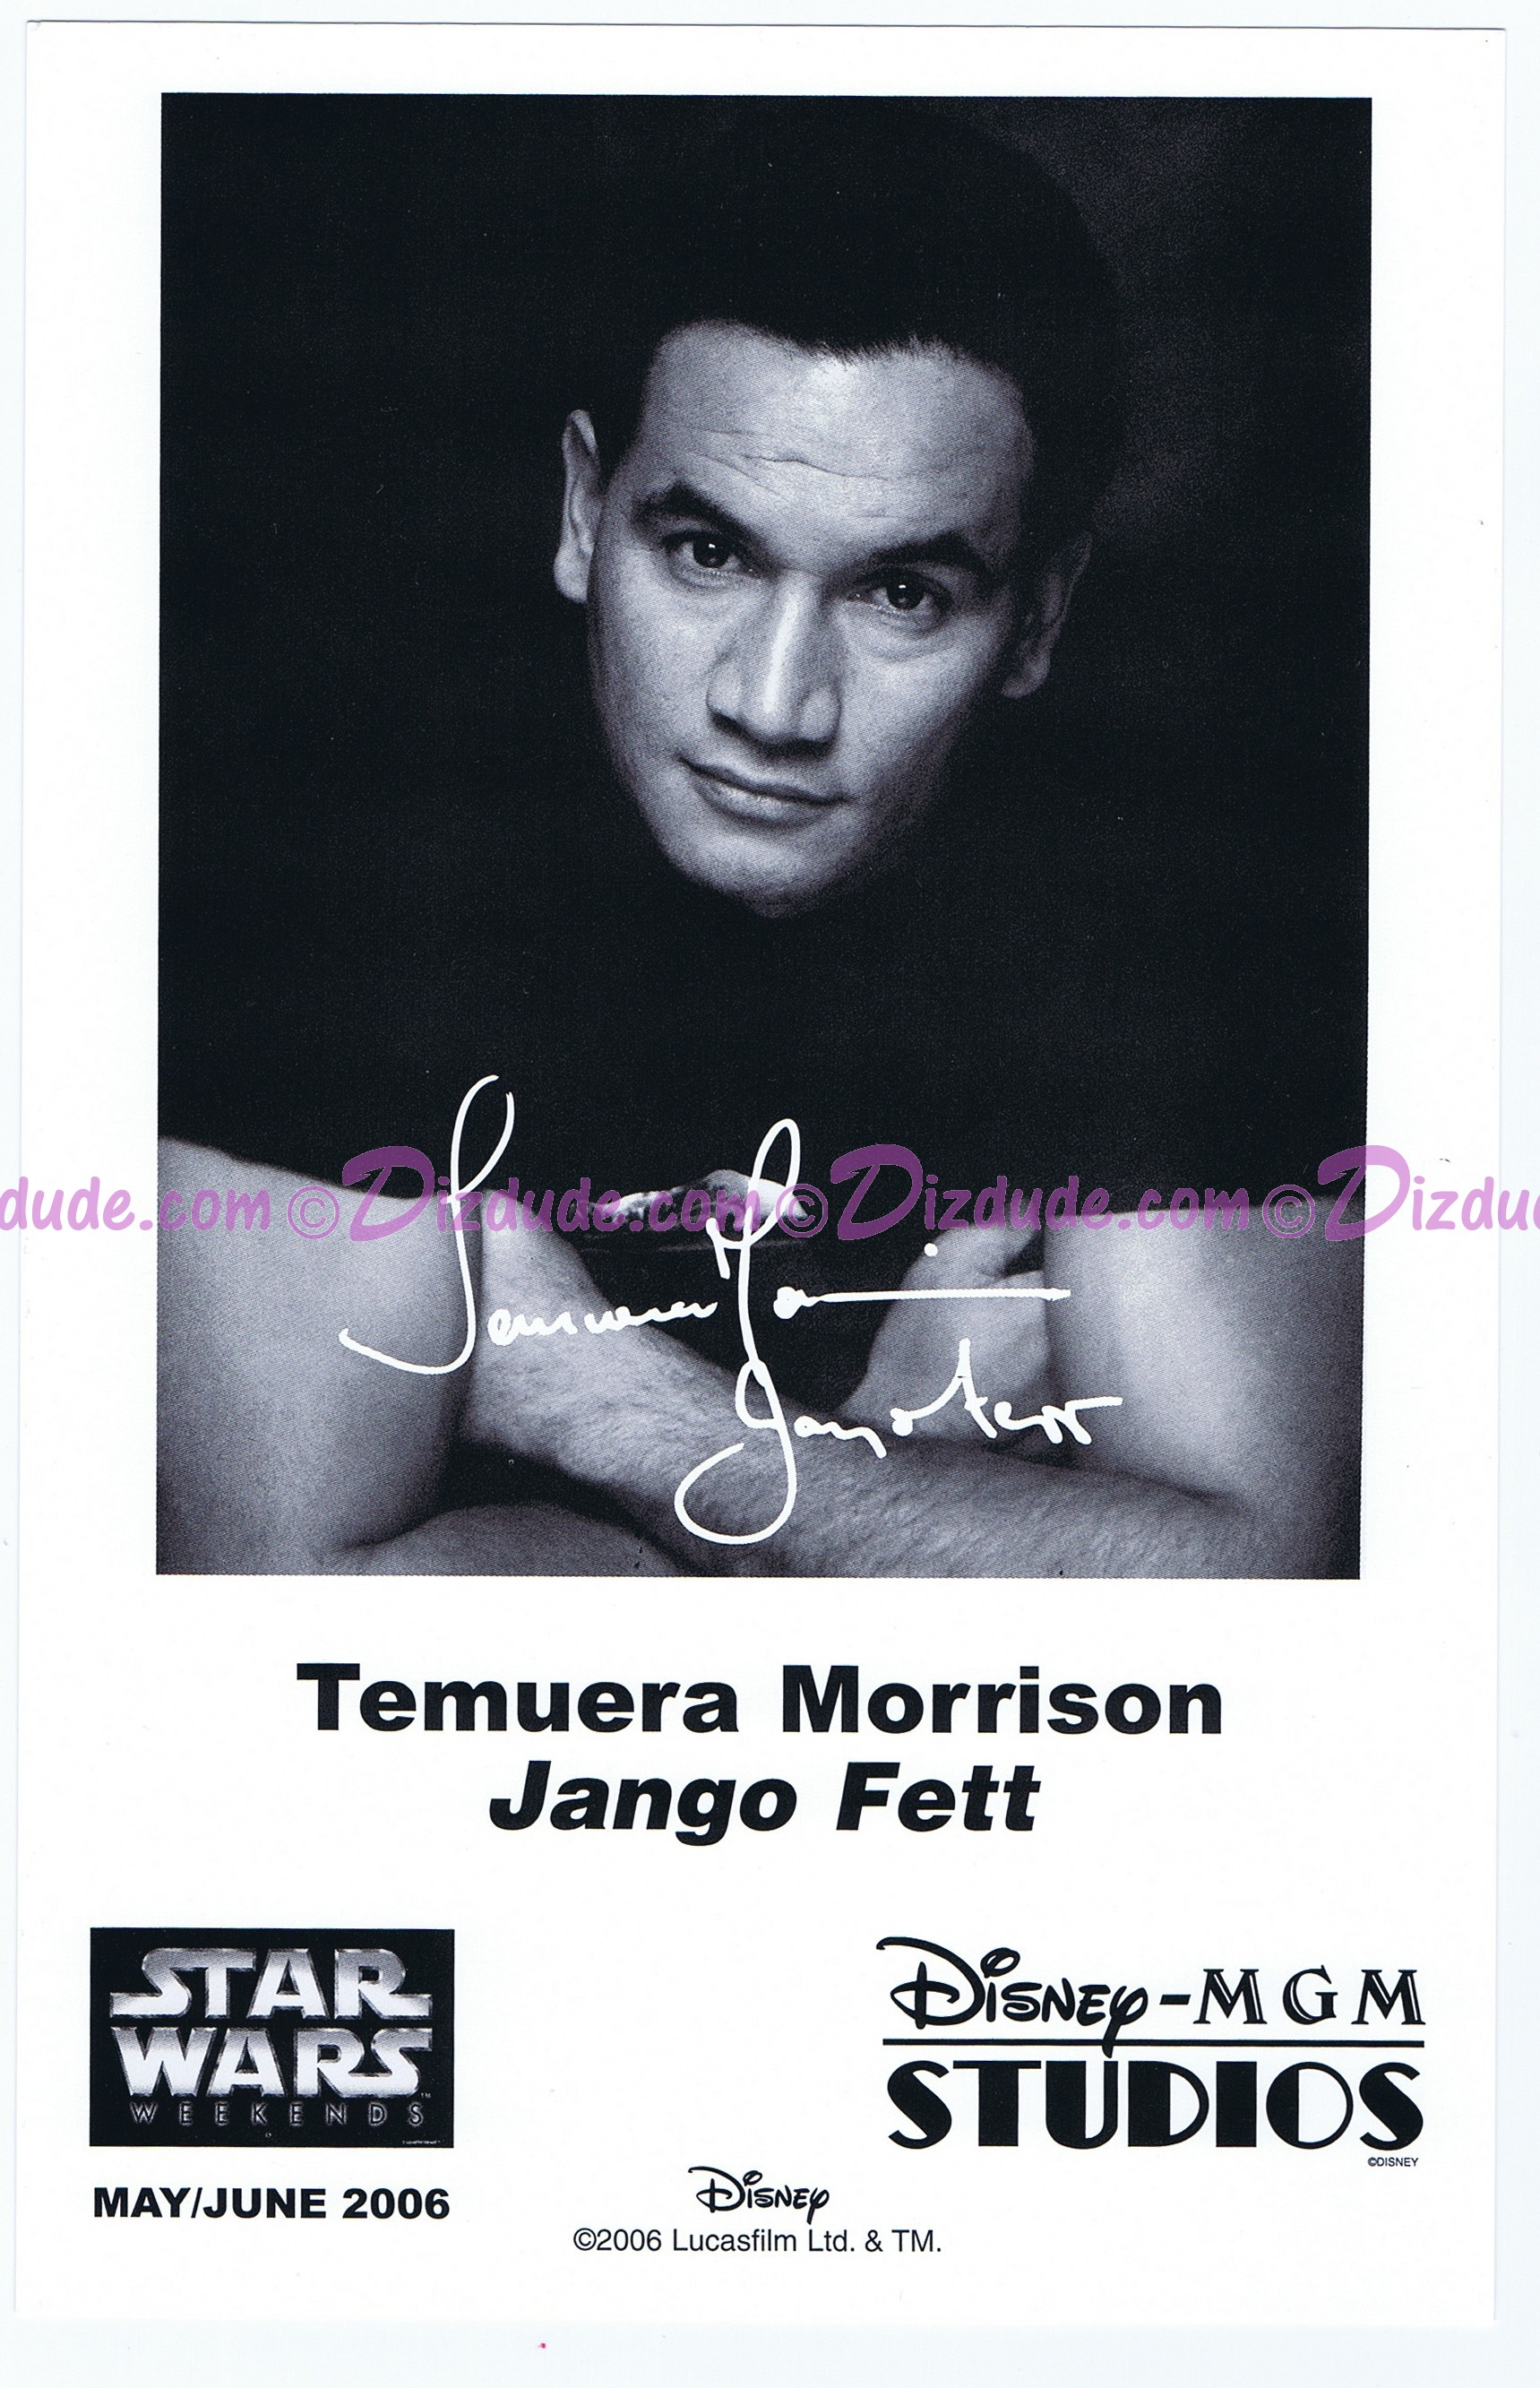 Temuera Morrison Who Played Jango Fett Presigned Official Star Wars Weekends 2006 Celebrity Collector Photo